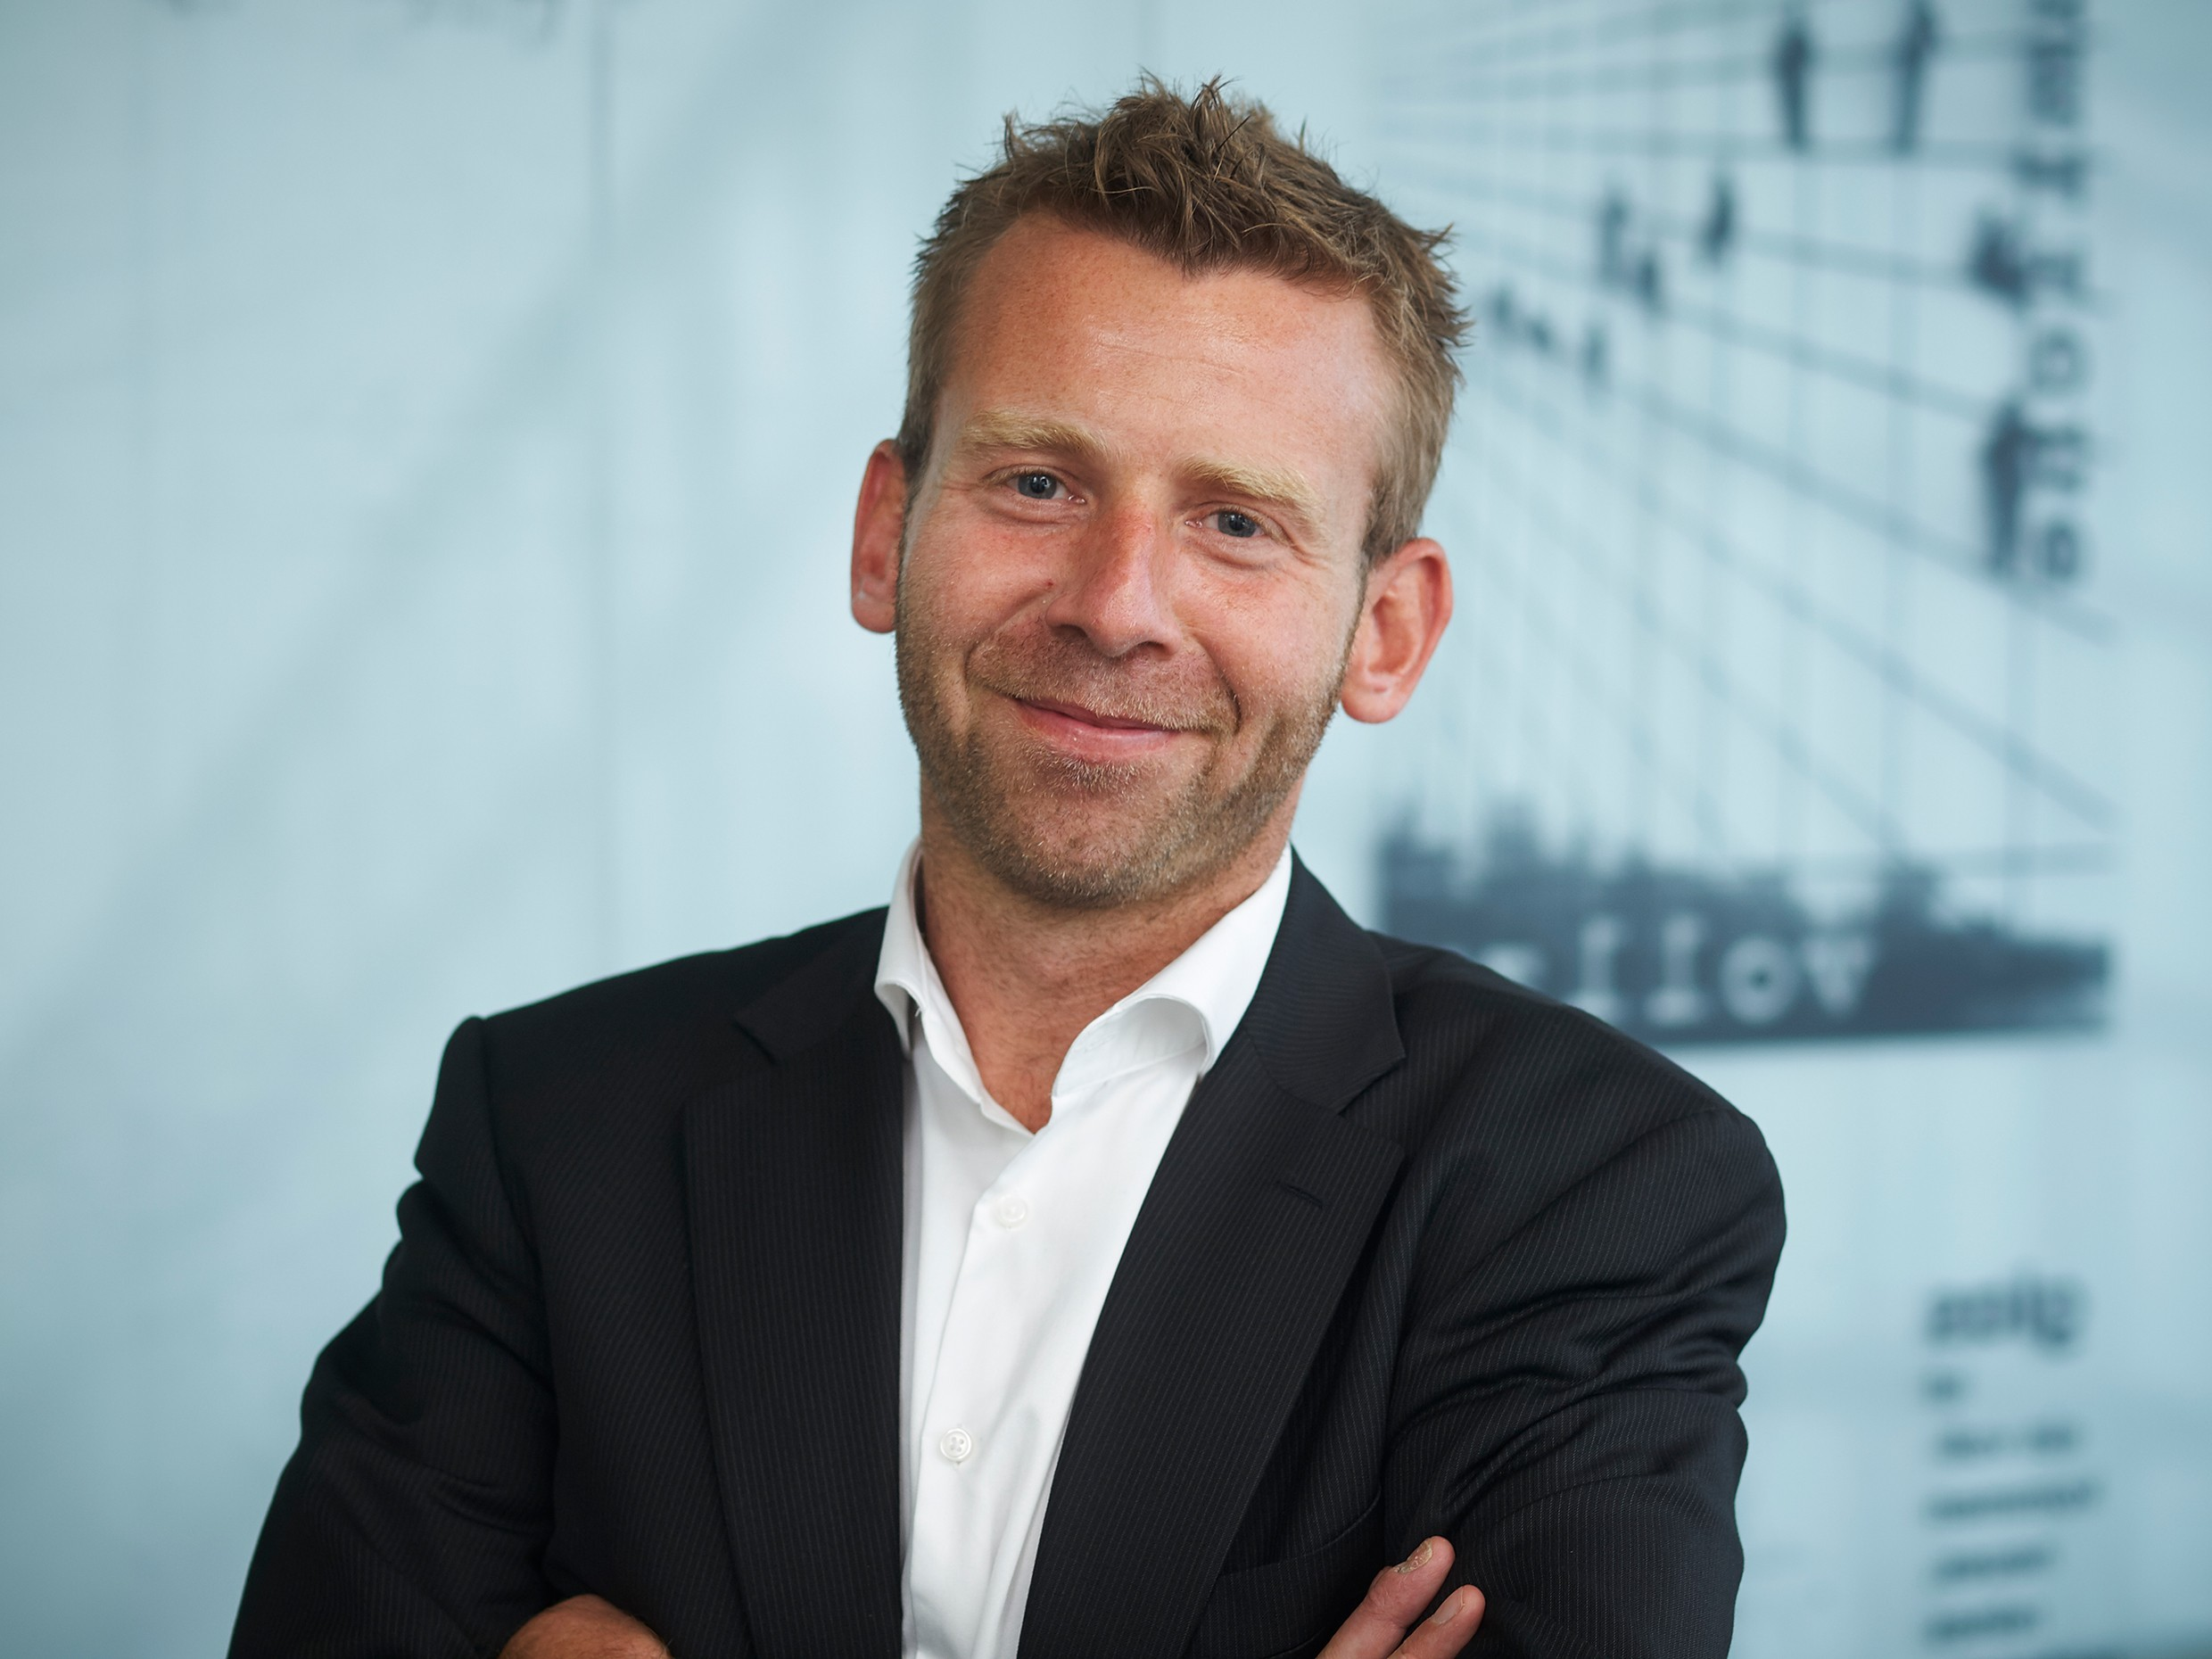 Lars Oberwinter is an architect and the Managing Director of Plandata.<br><span class='image_copyright'>ATP/Carl Anders Nilsson</span><br>